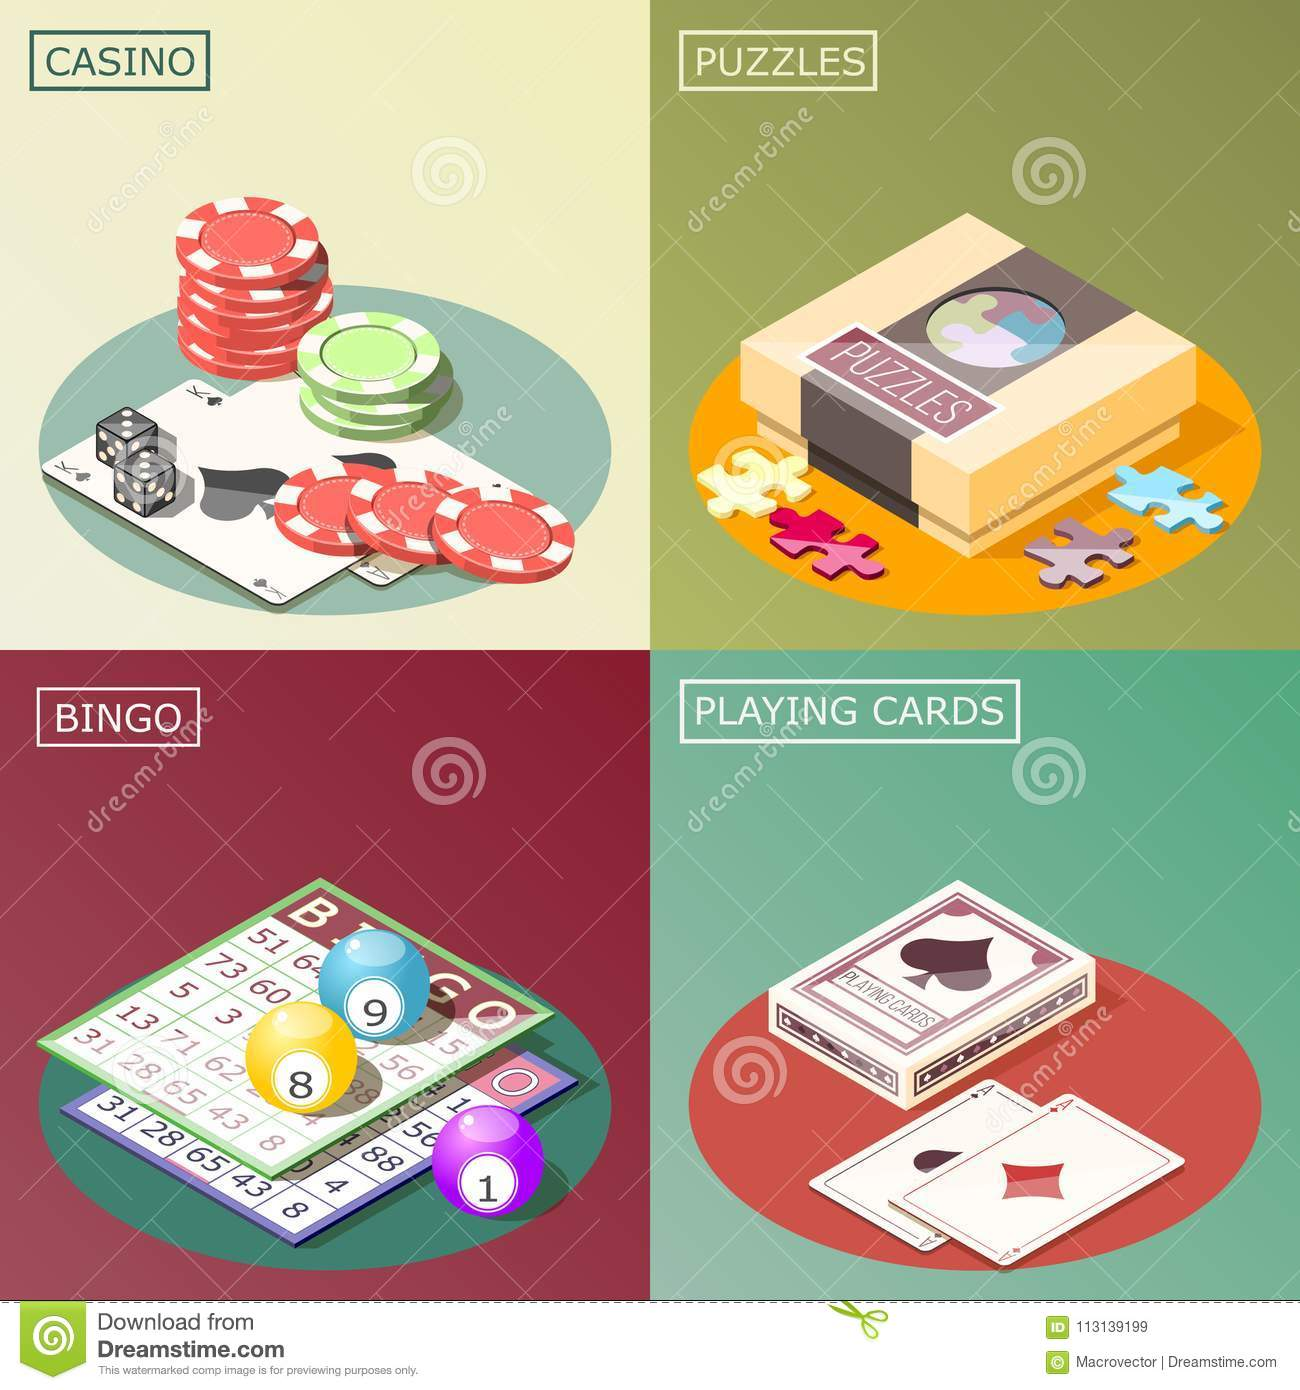 Number Puzzles Arranged In A Row Royalty Free Stock Image